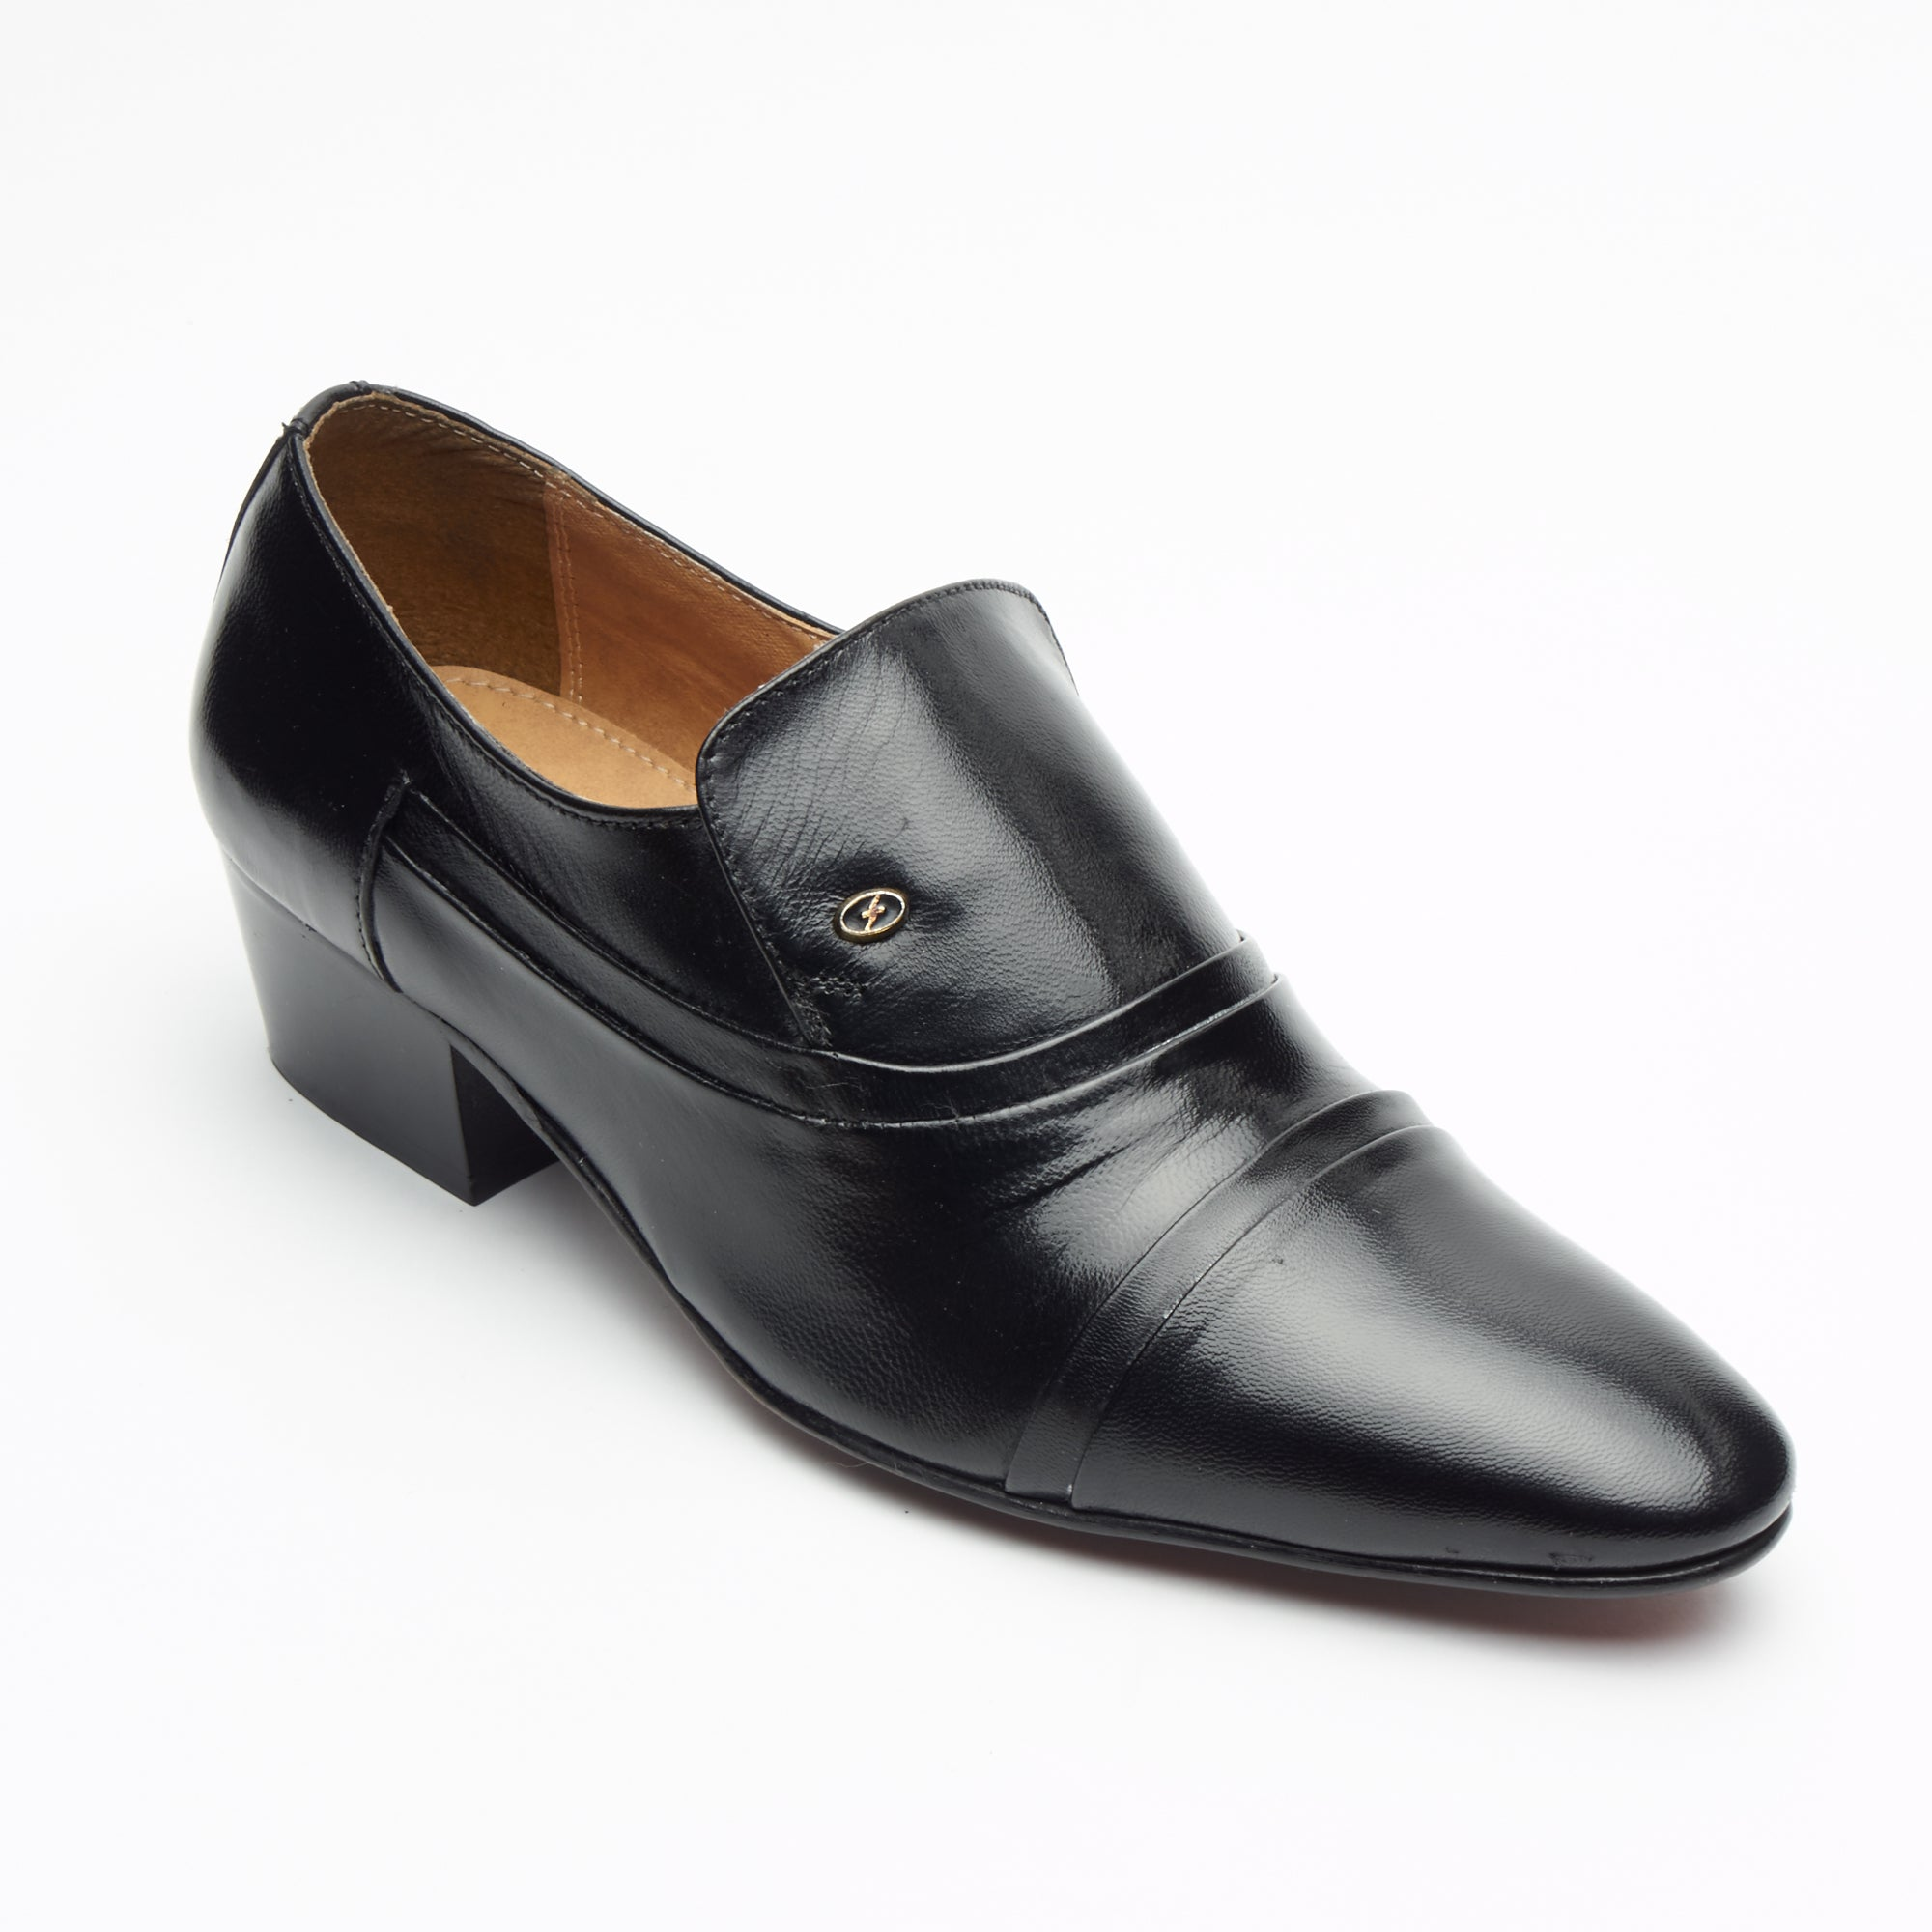 Mens Cuban Heel Leather Shoes - 26287 Black